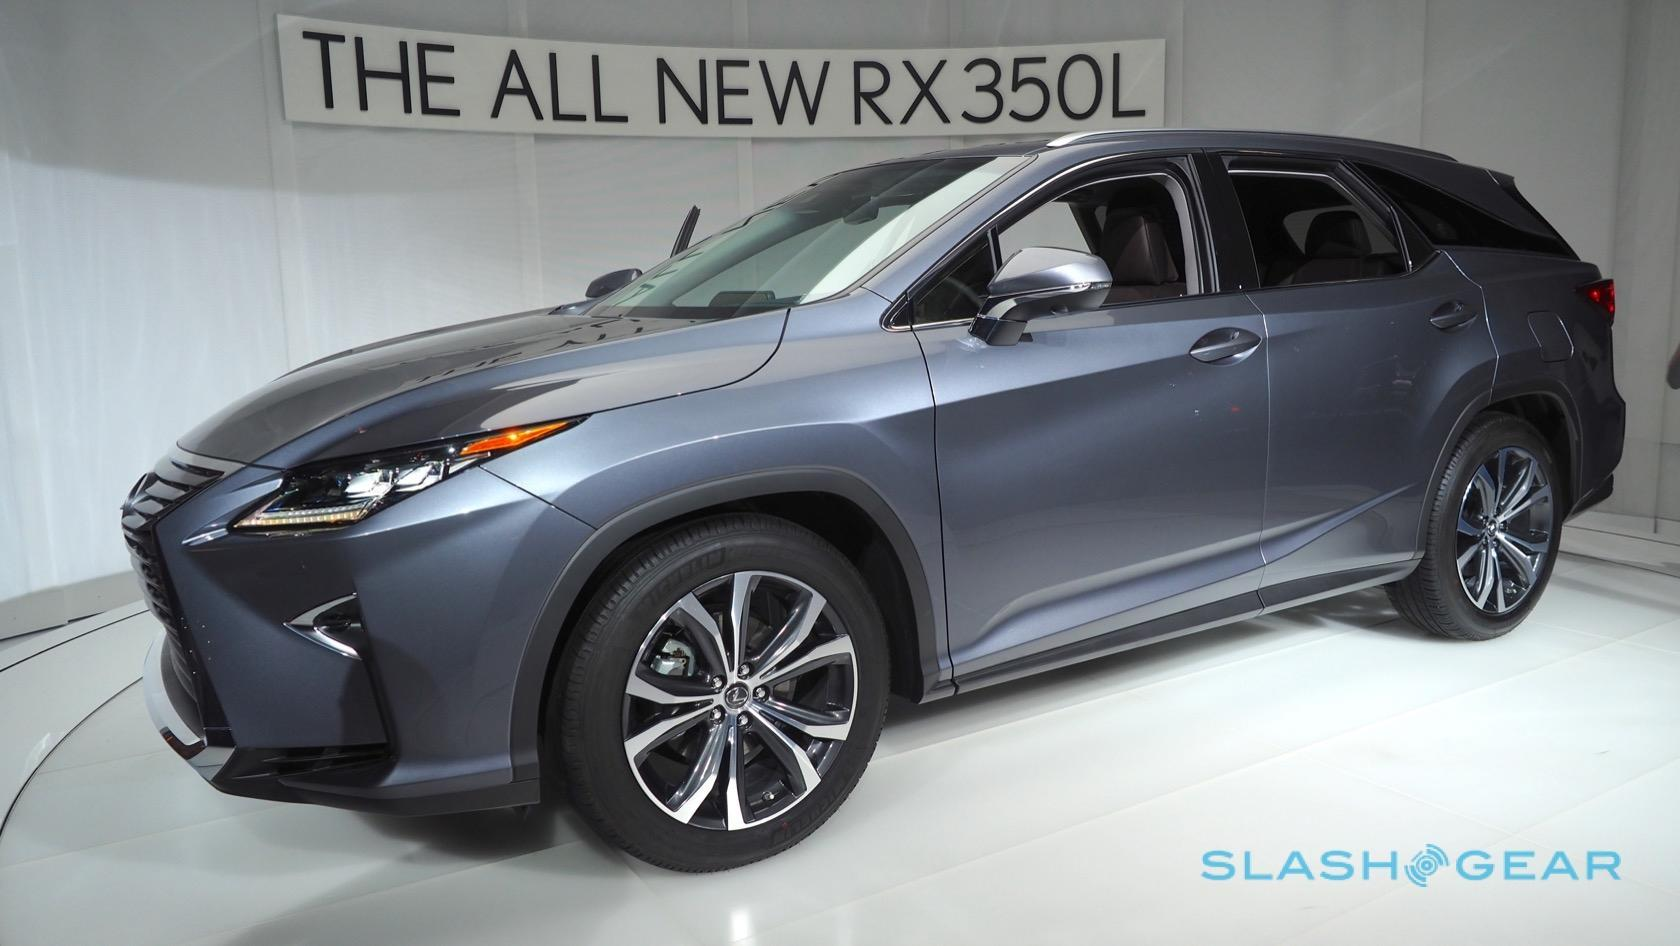 Lexus 3 Row Suv >> 2018 Lexus Rx 450hl 3 Row Hybrid Suv Priced Up Slashgear